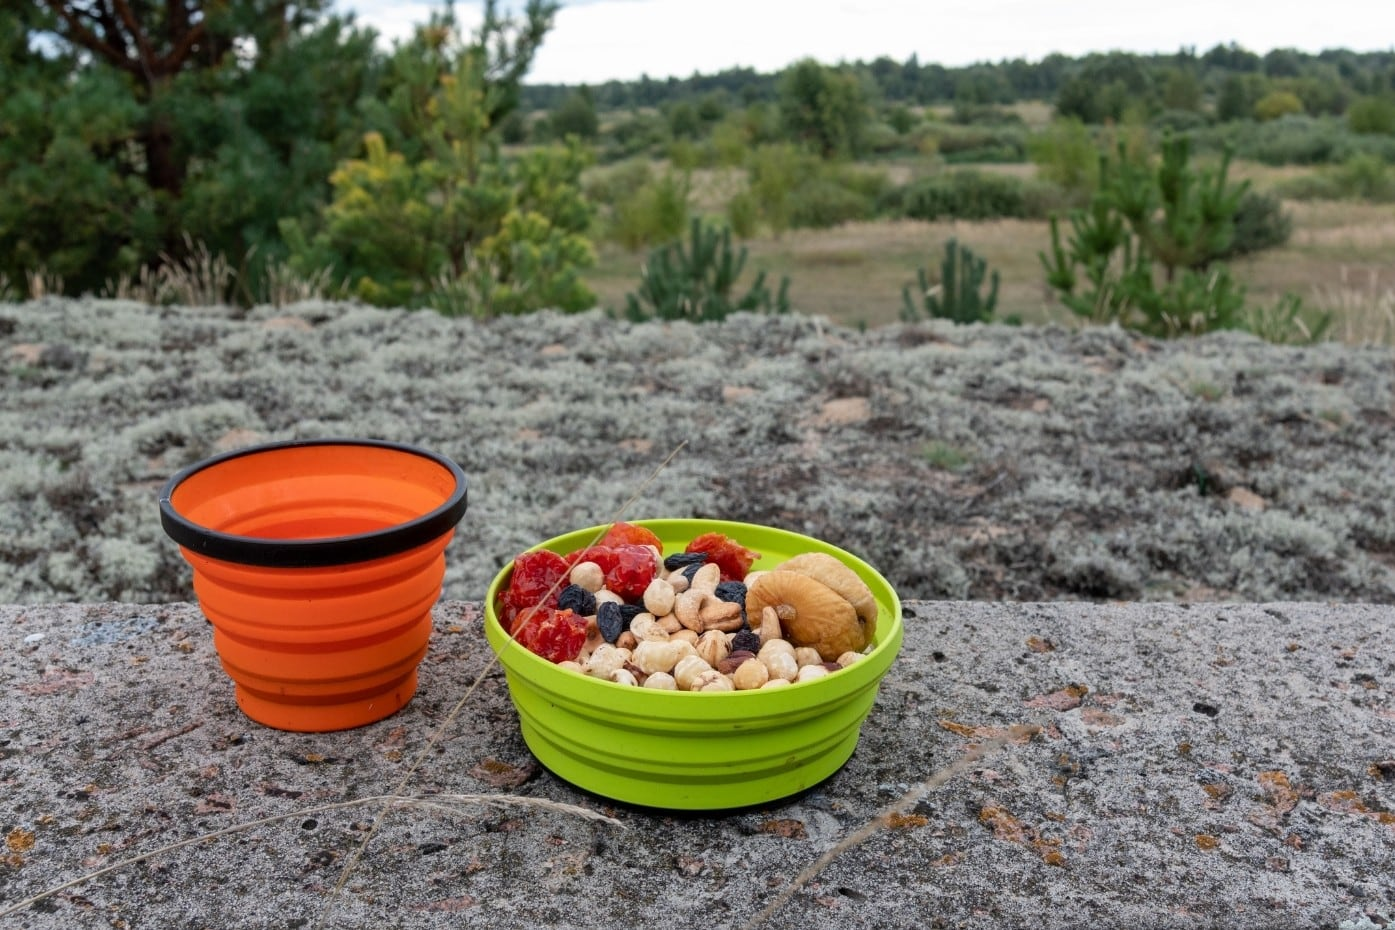 Nuts and dried fruit in a green bowl on a rock